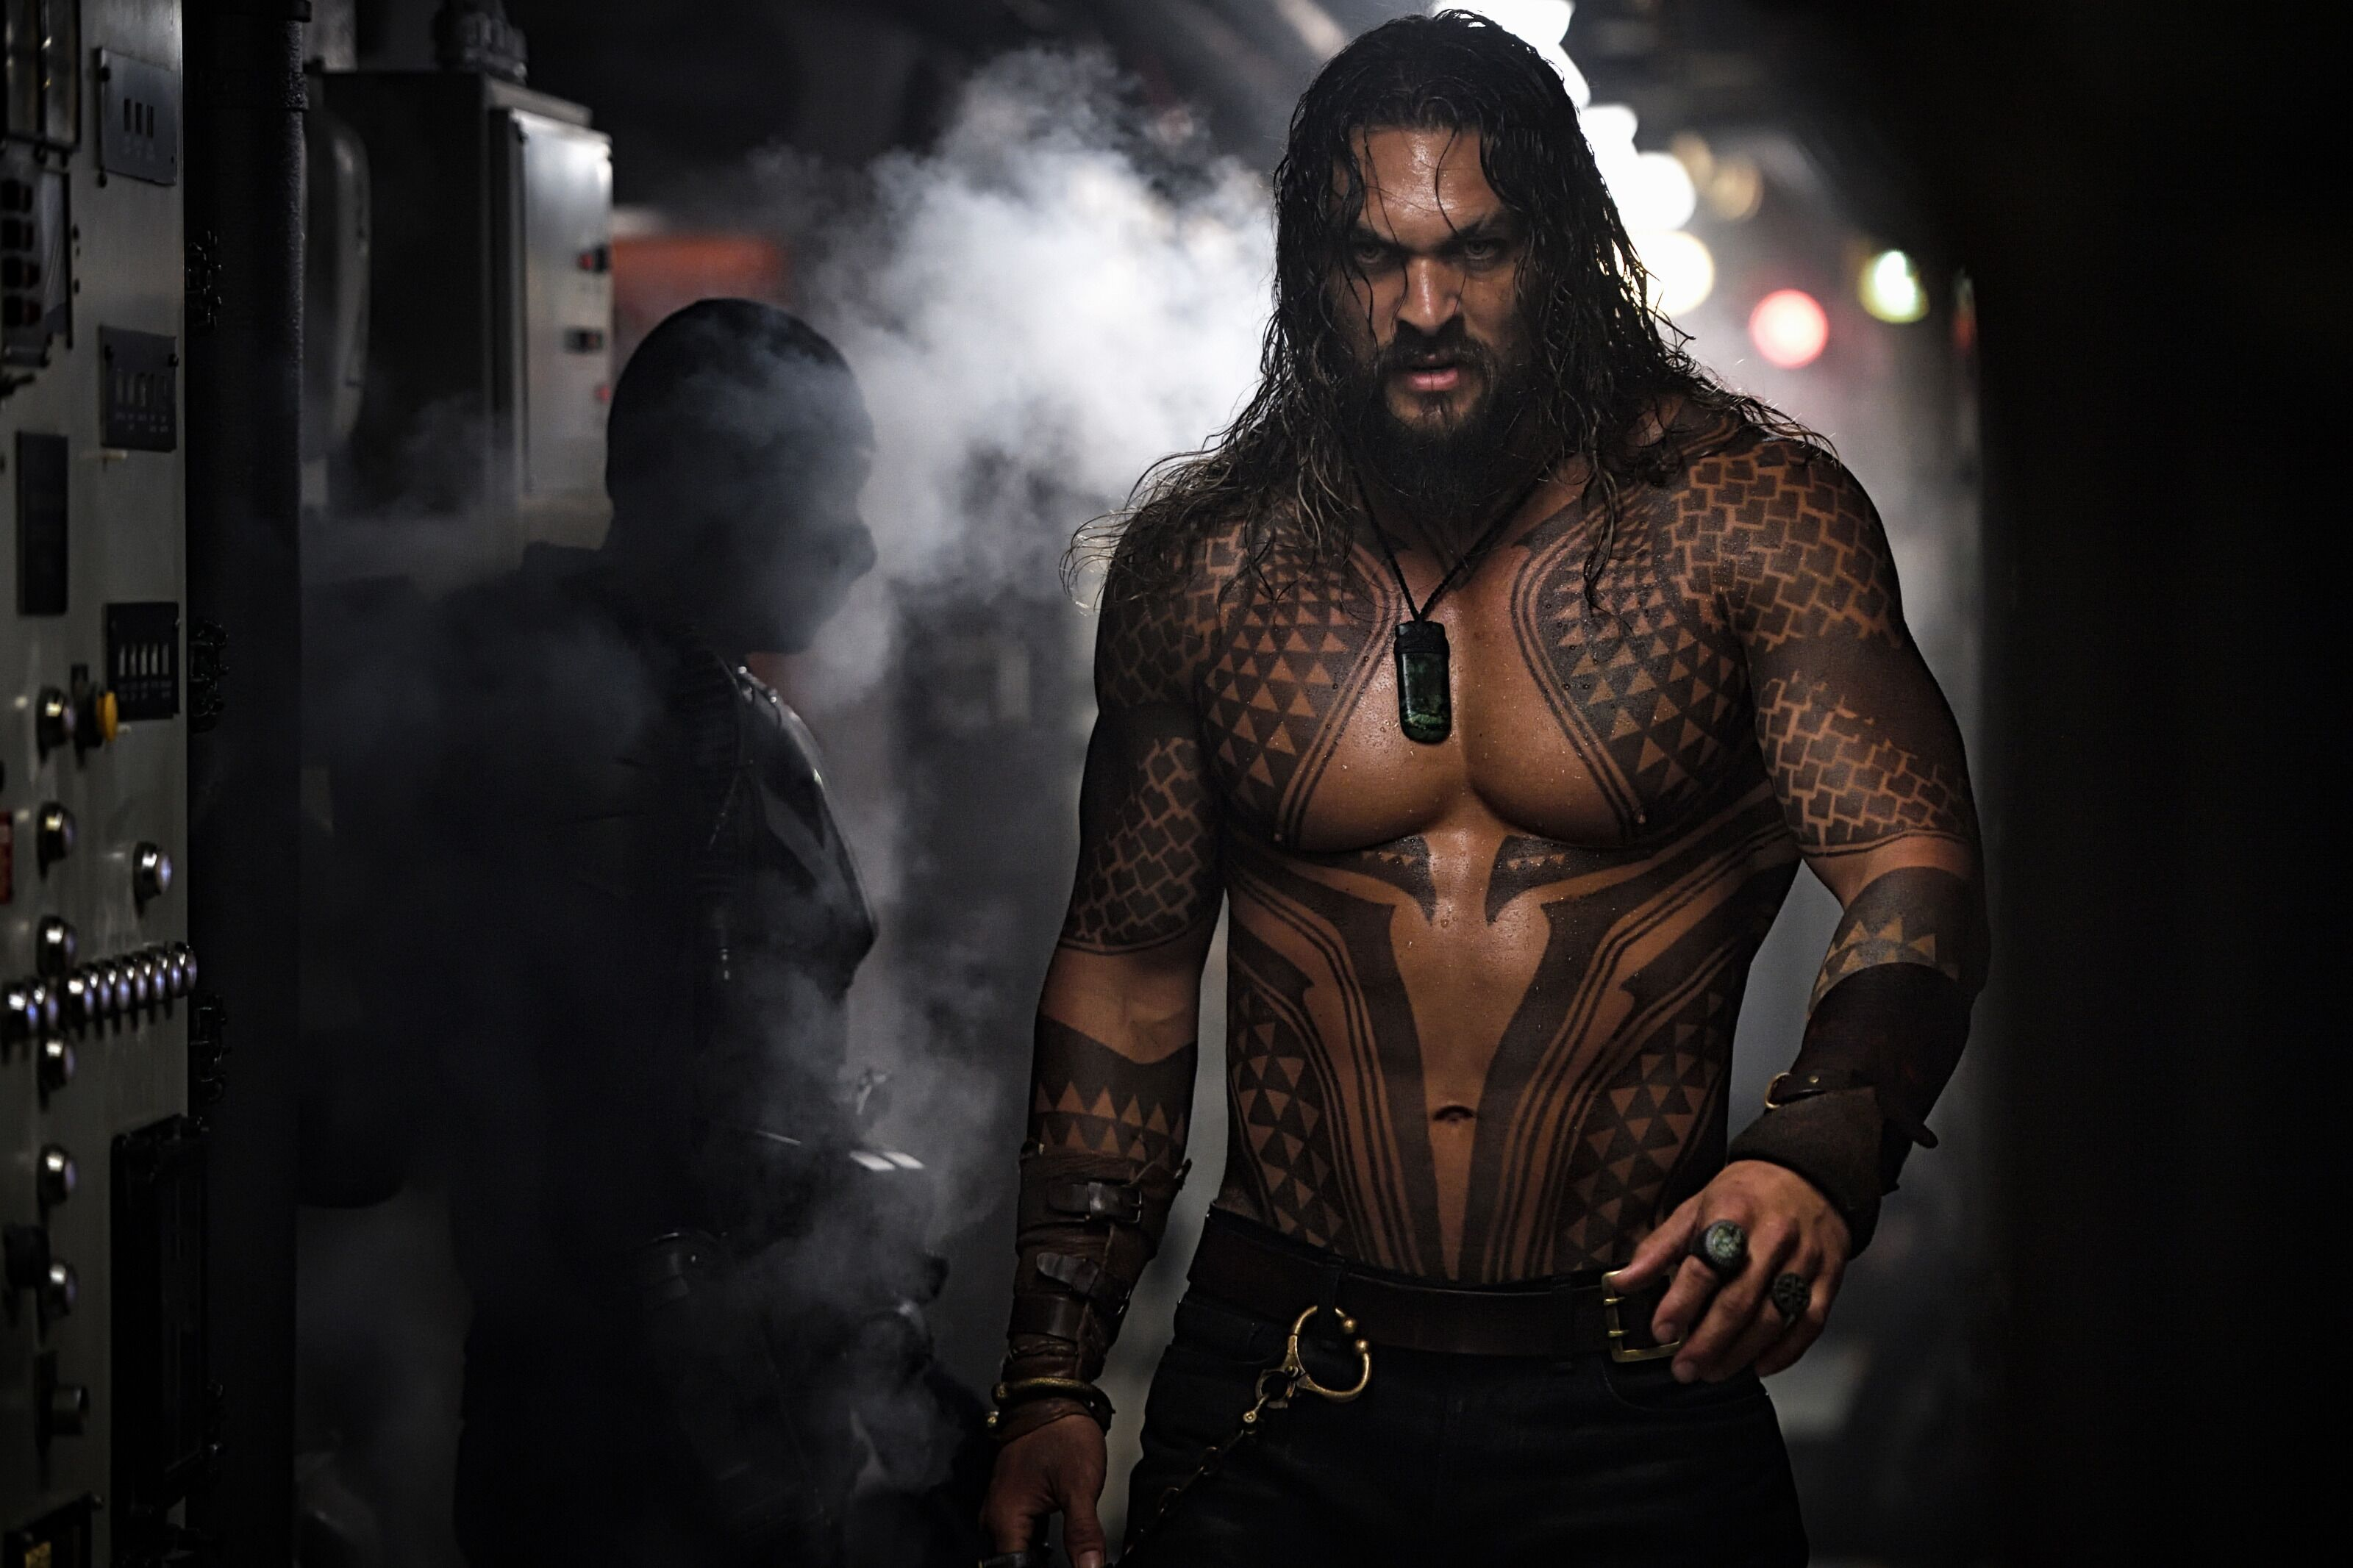 An animated Aquaman series is coming HBO Max